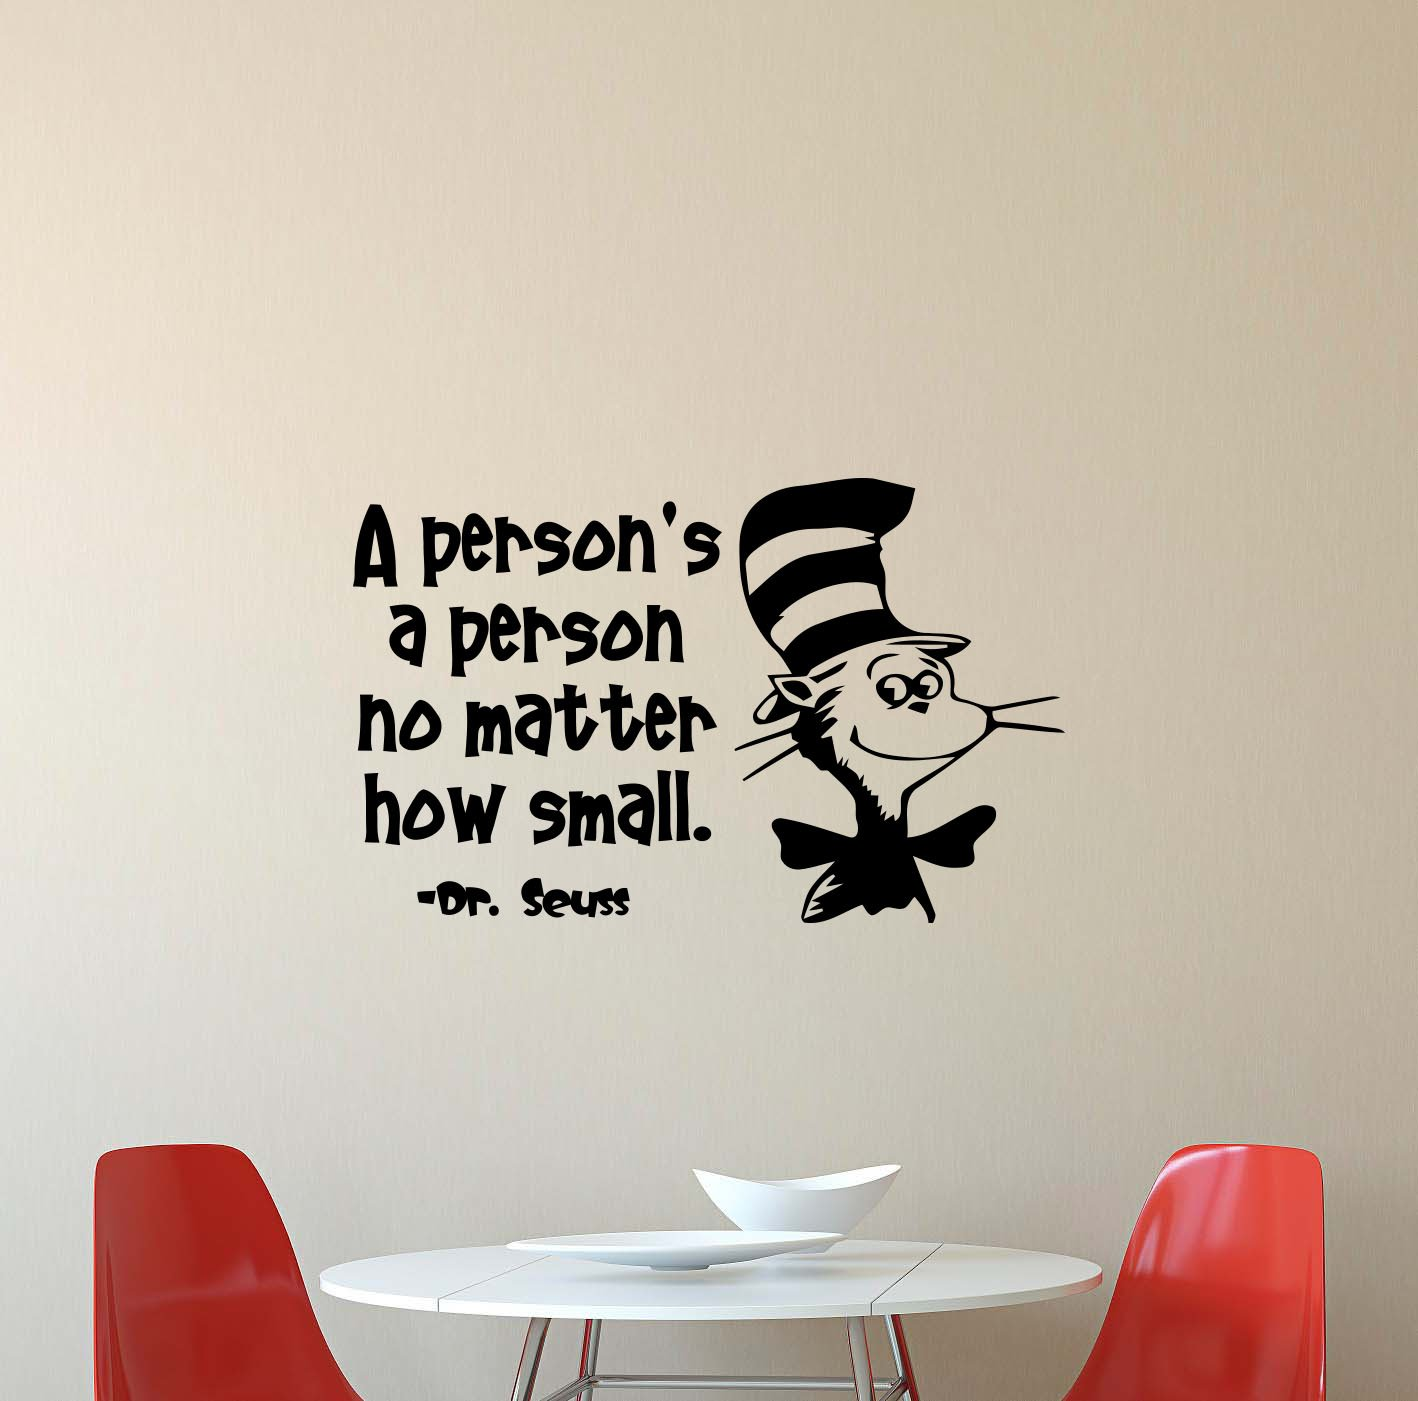 Dr seuss wall decal a persons a person no matter how small quote walt disney lettering gift stencil vinyl sticker home kids playroom bedroom decor art